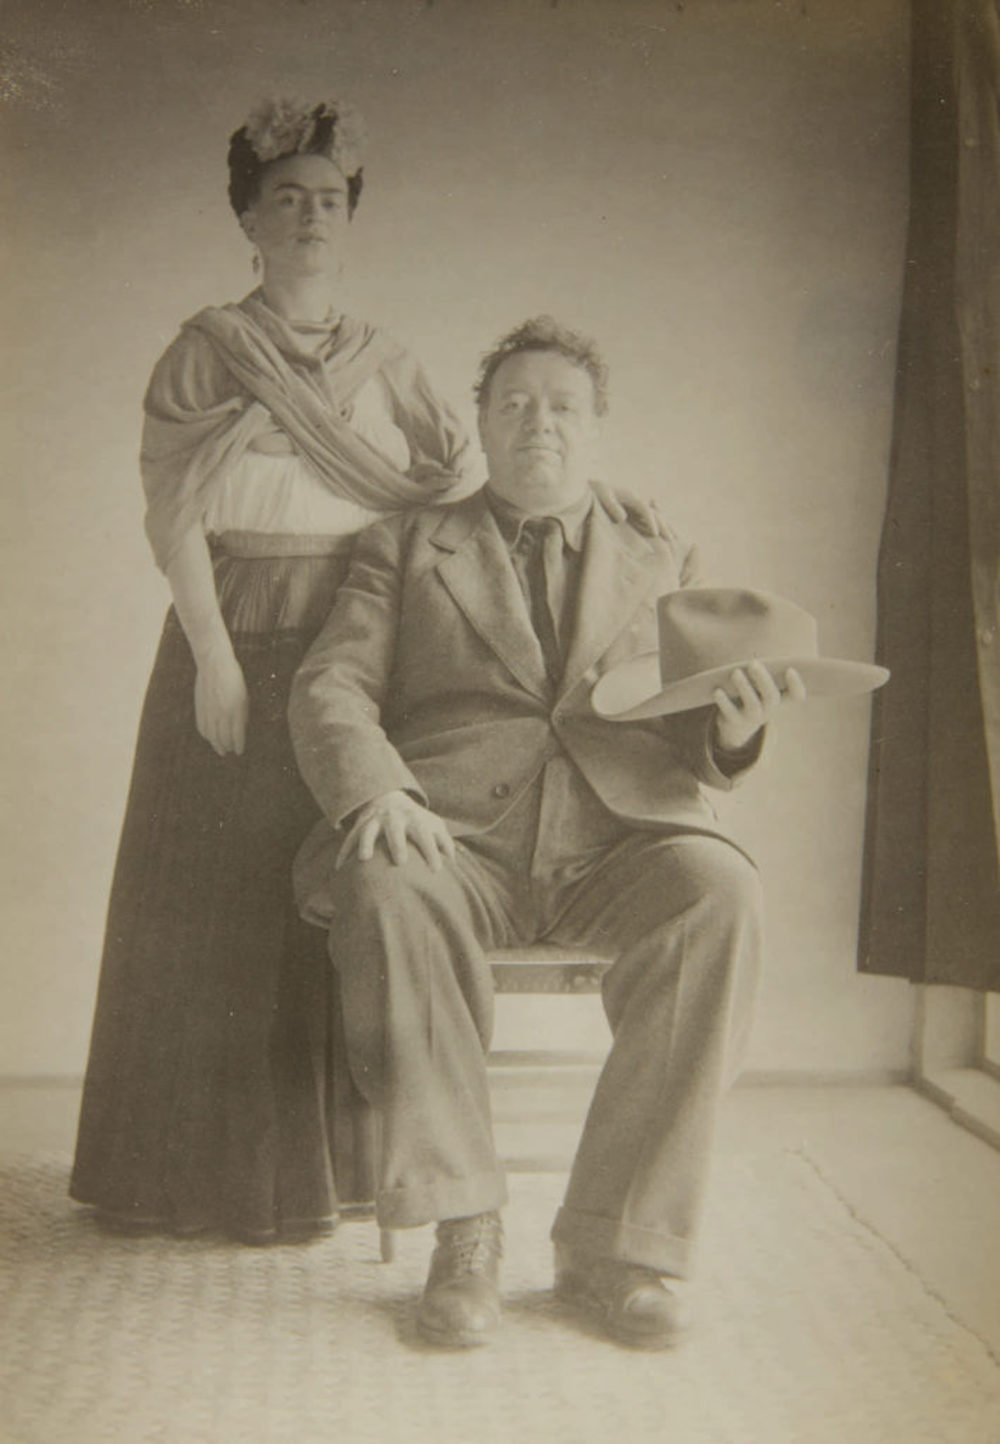 Nickolas Muray, Frida Kahlo and Diego Rivera (1940)